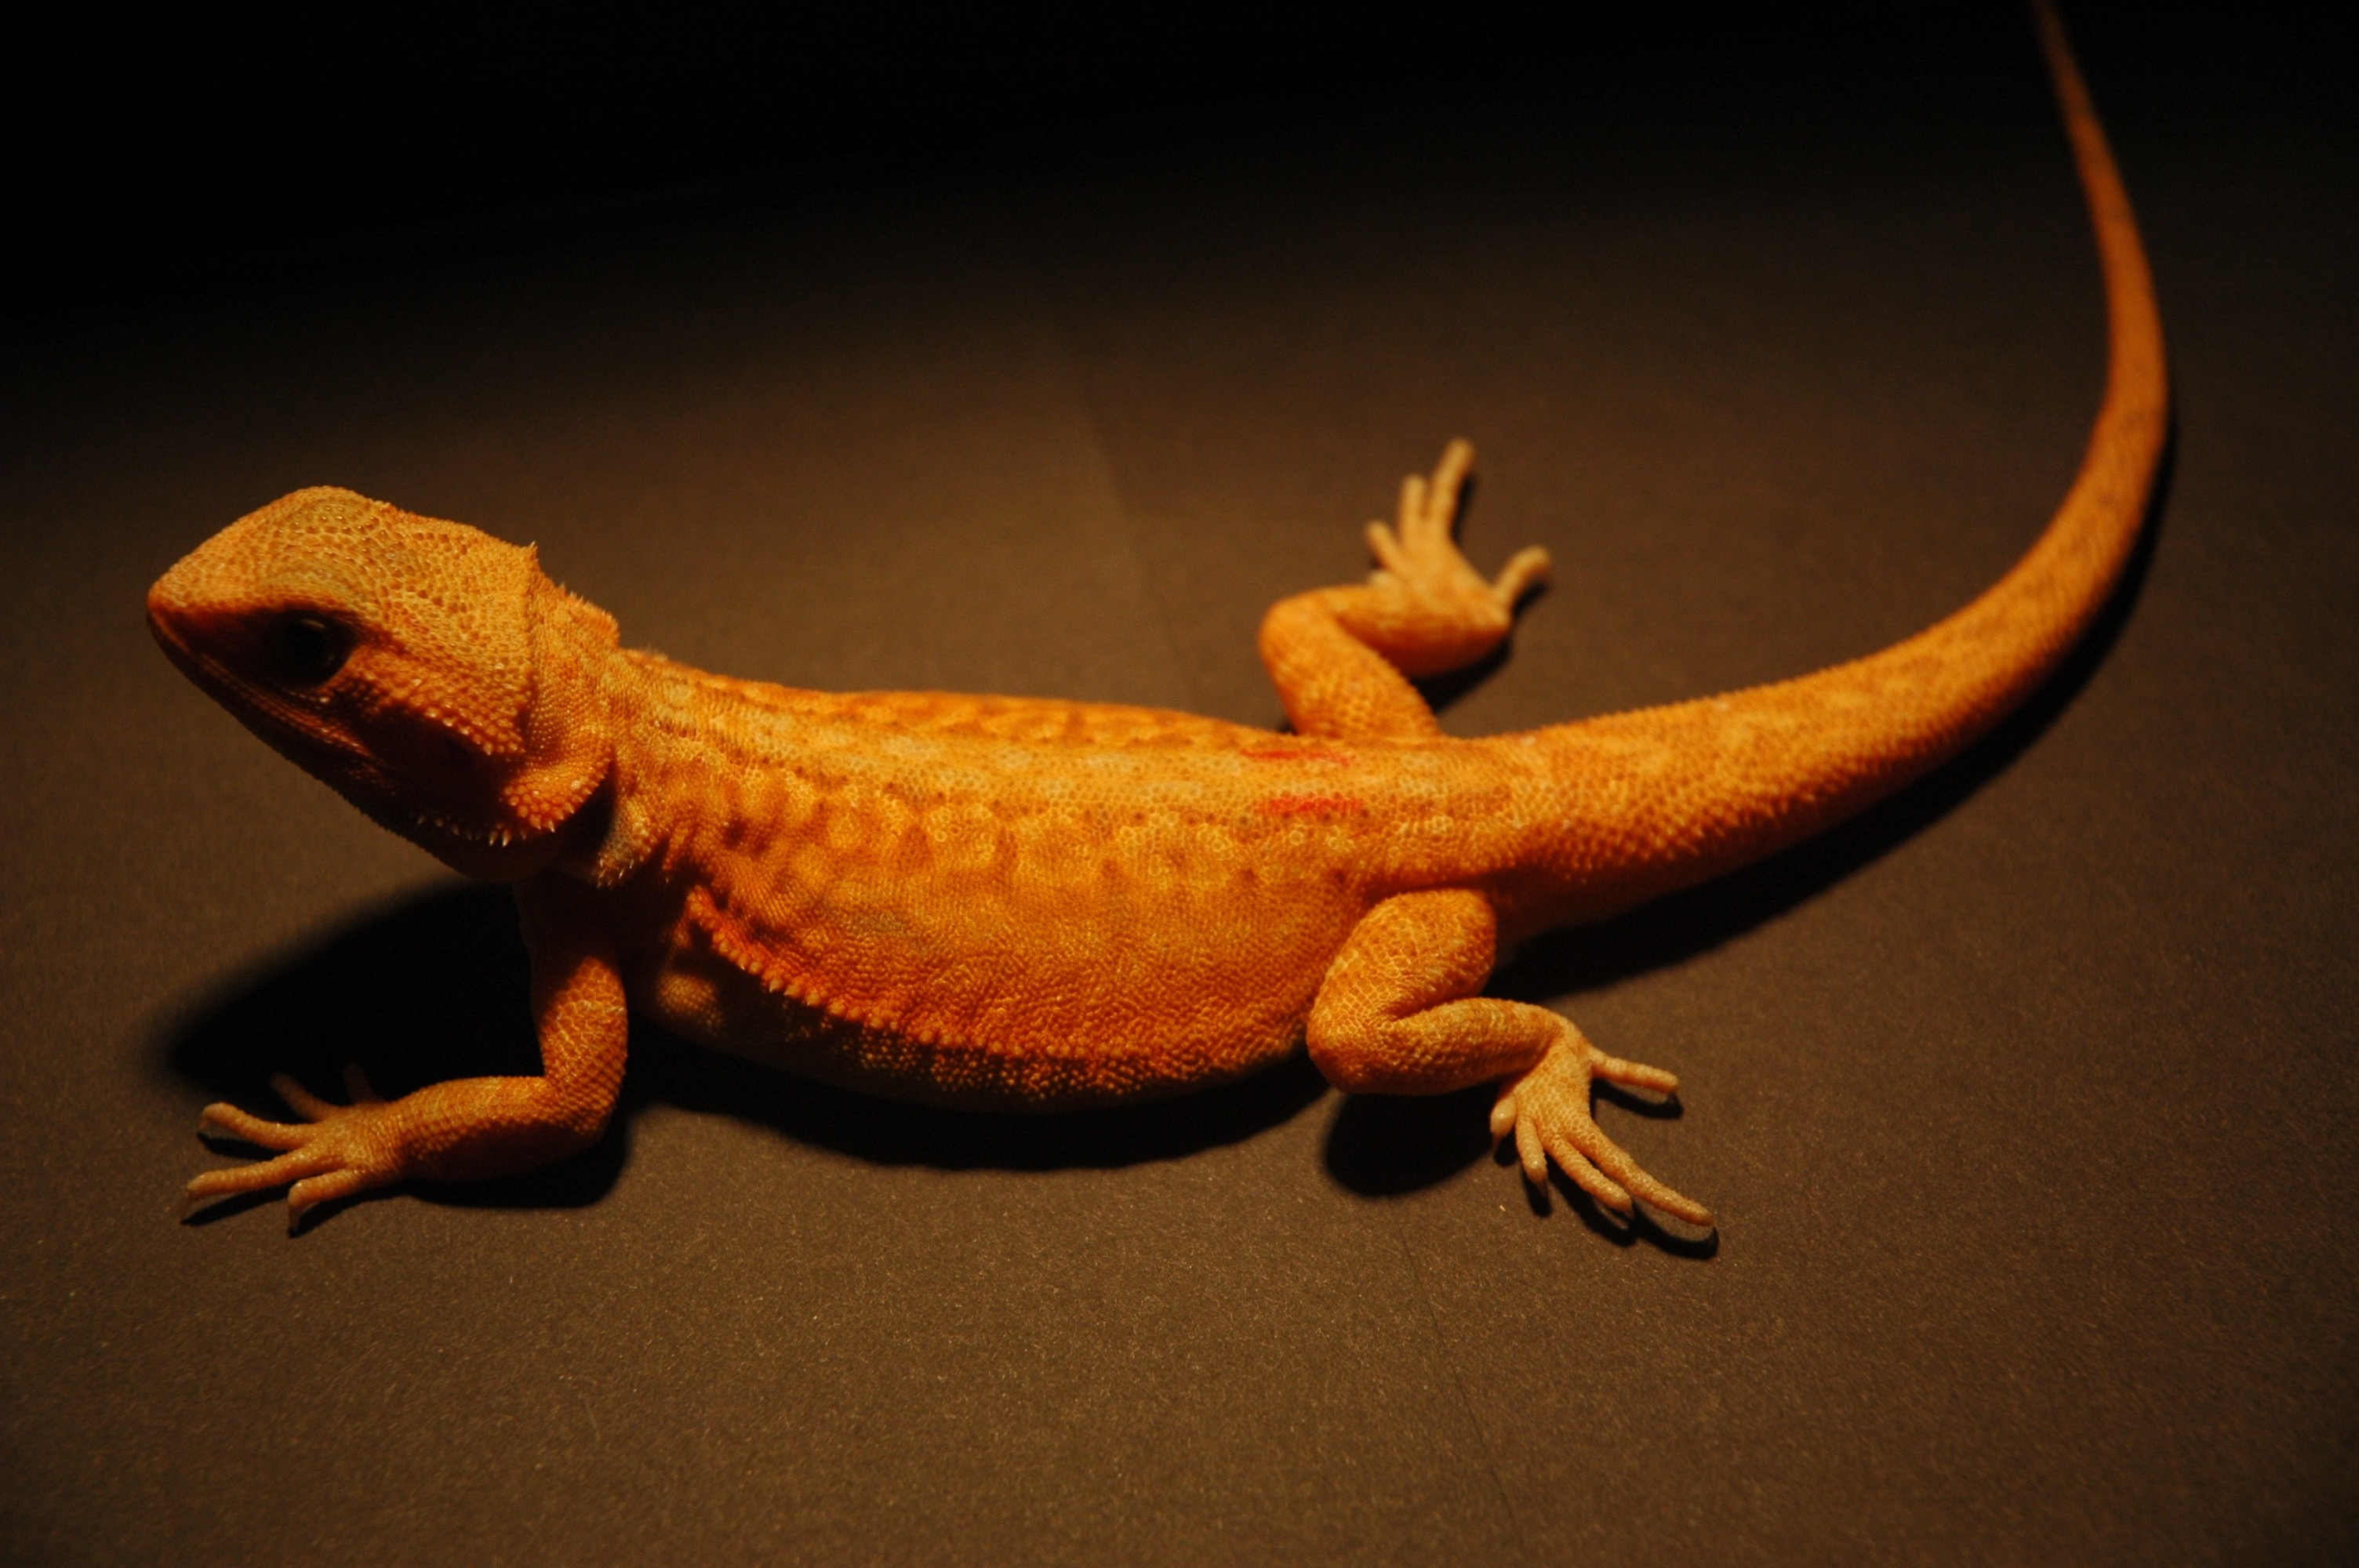 BackwaterReptilescom has fantastic captivebred Bearded Dragons for sale Pogona vitticeps at incredibly low prices Live arrival guaranteed!